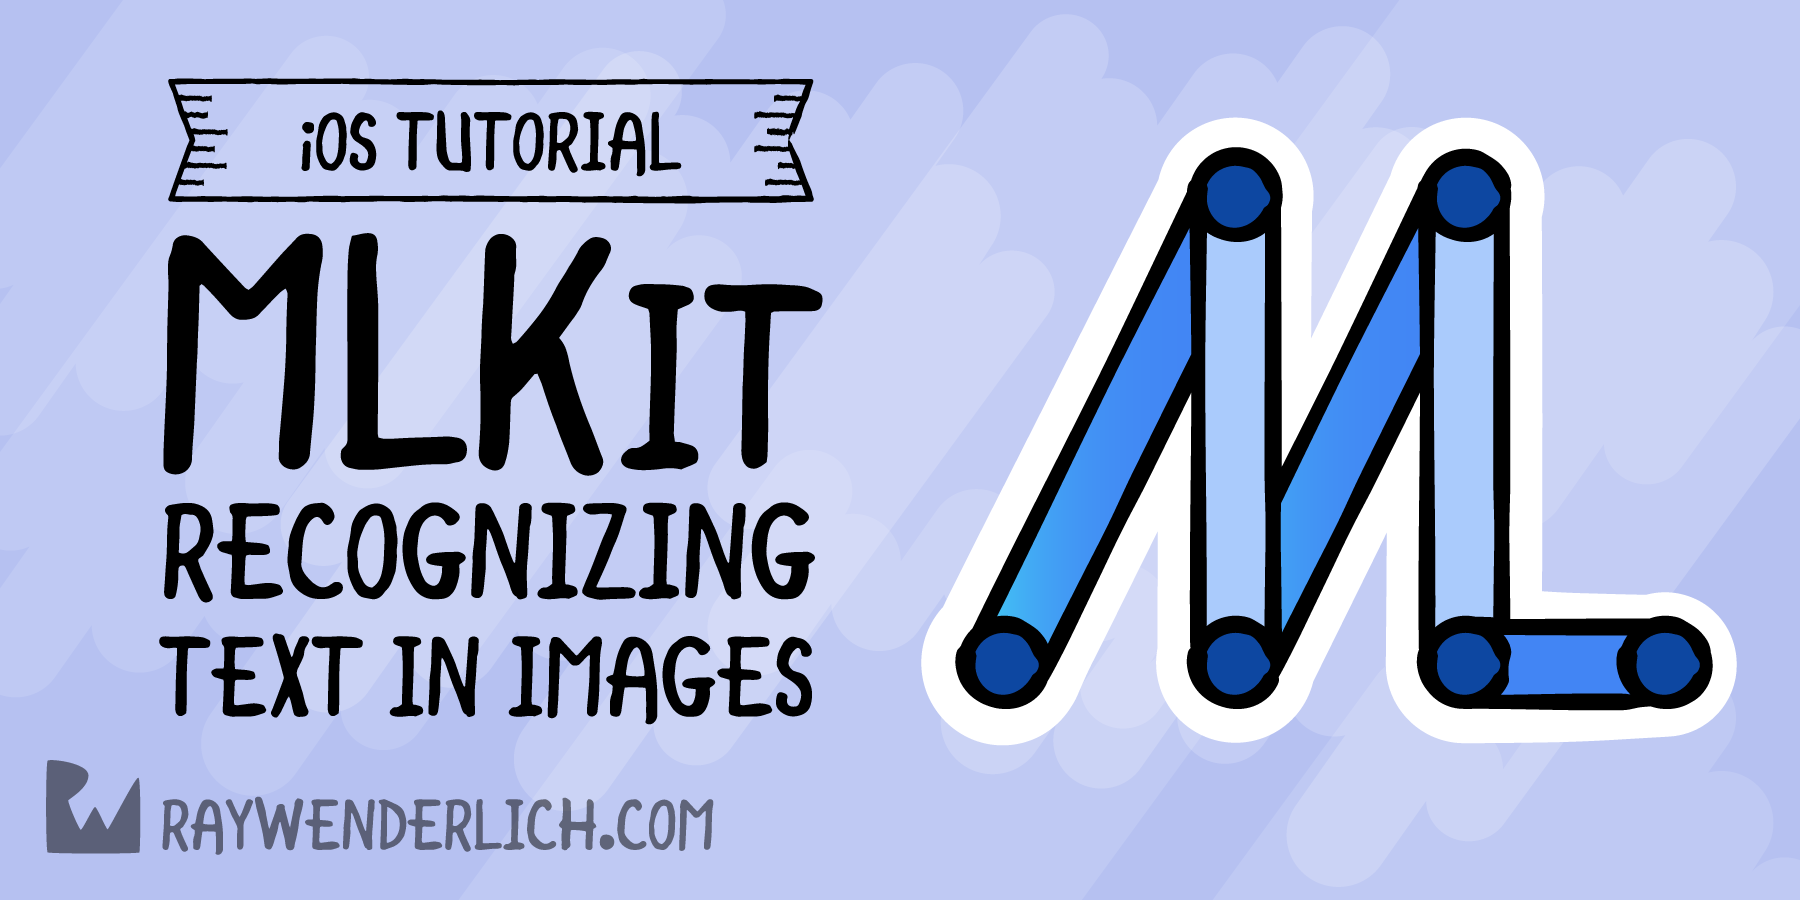 ML Kit Tutorial for iOS: Recognizing Text in Images | raywenderlich com